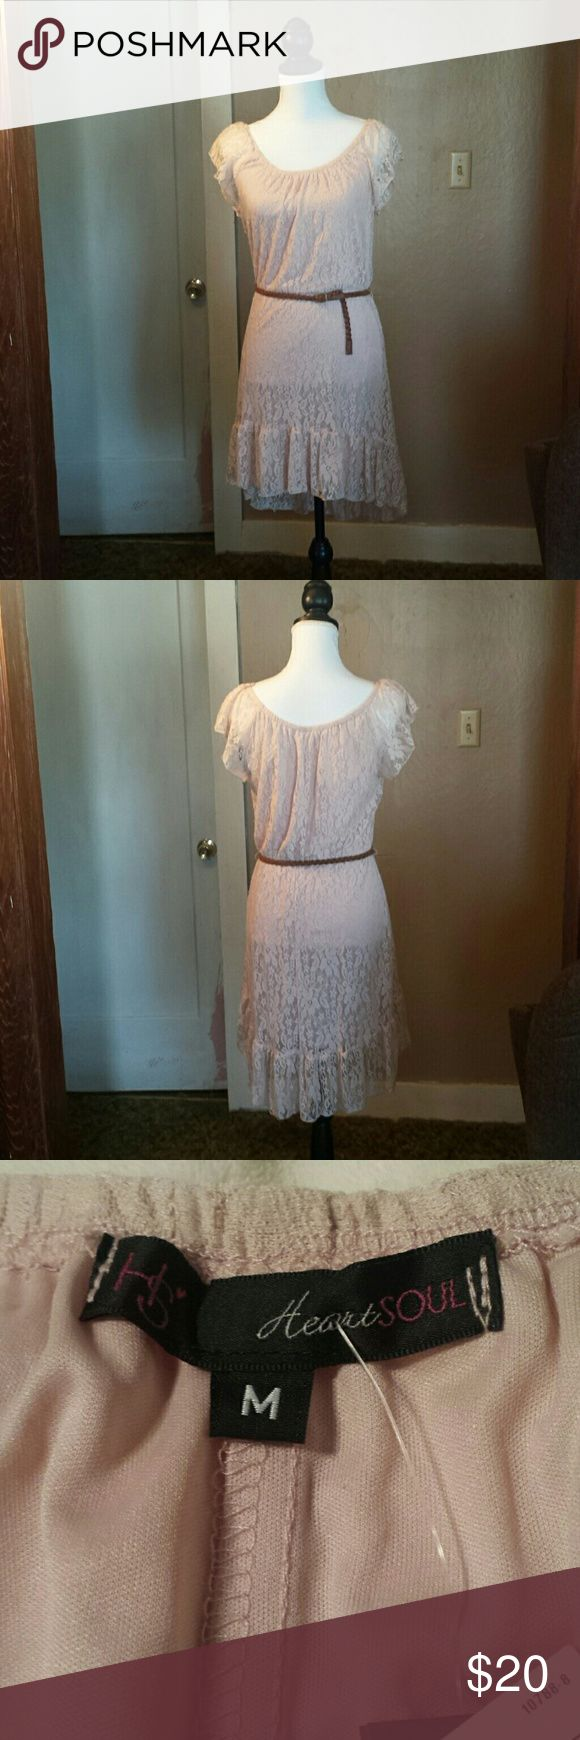 NWT HeartSoul Blush Lace Dress with Belt SZ M NWT This blush lace dress with tan braided leather belt is made by HeartSoul. This dress is a size Medium. This dress has cap sleeves, scoop neckline, elastic waistline, and a high low skirt. This dress is lined. In brand new condition. HeartSoul Dresses Midi